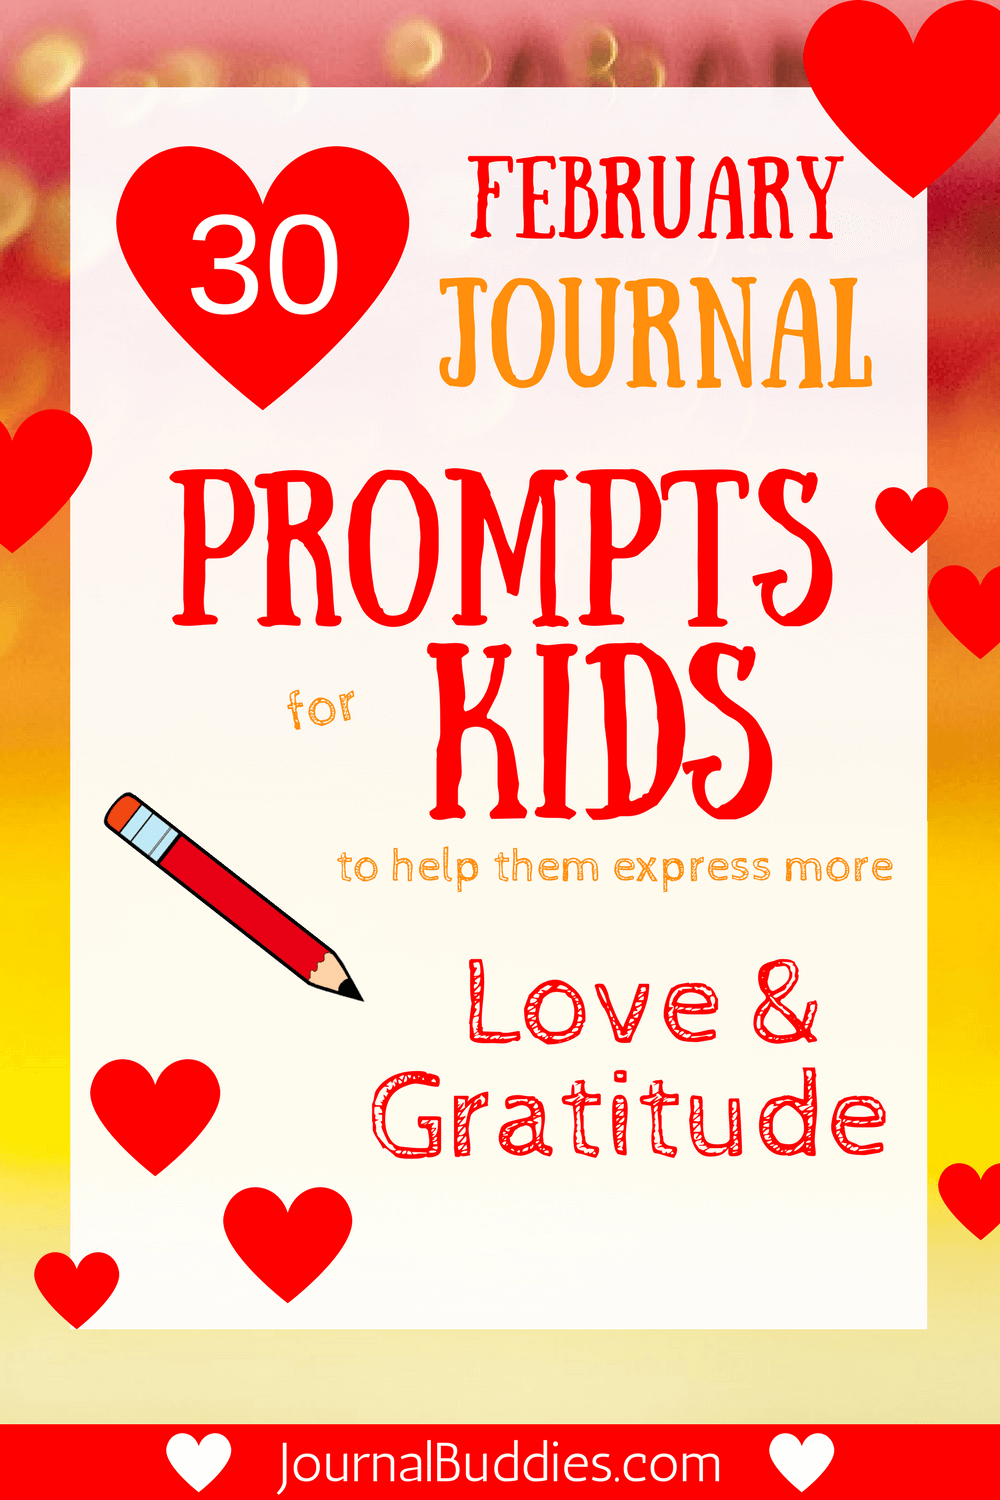 In this month's list of February writing prompts for kids, students will practice expressing the two essential emotions of gratitude and love.